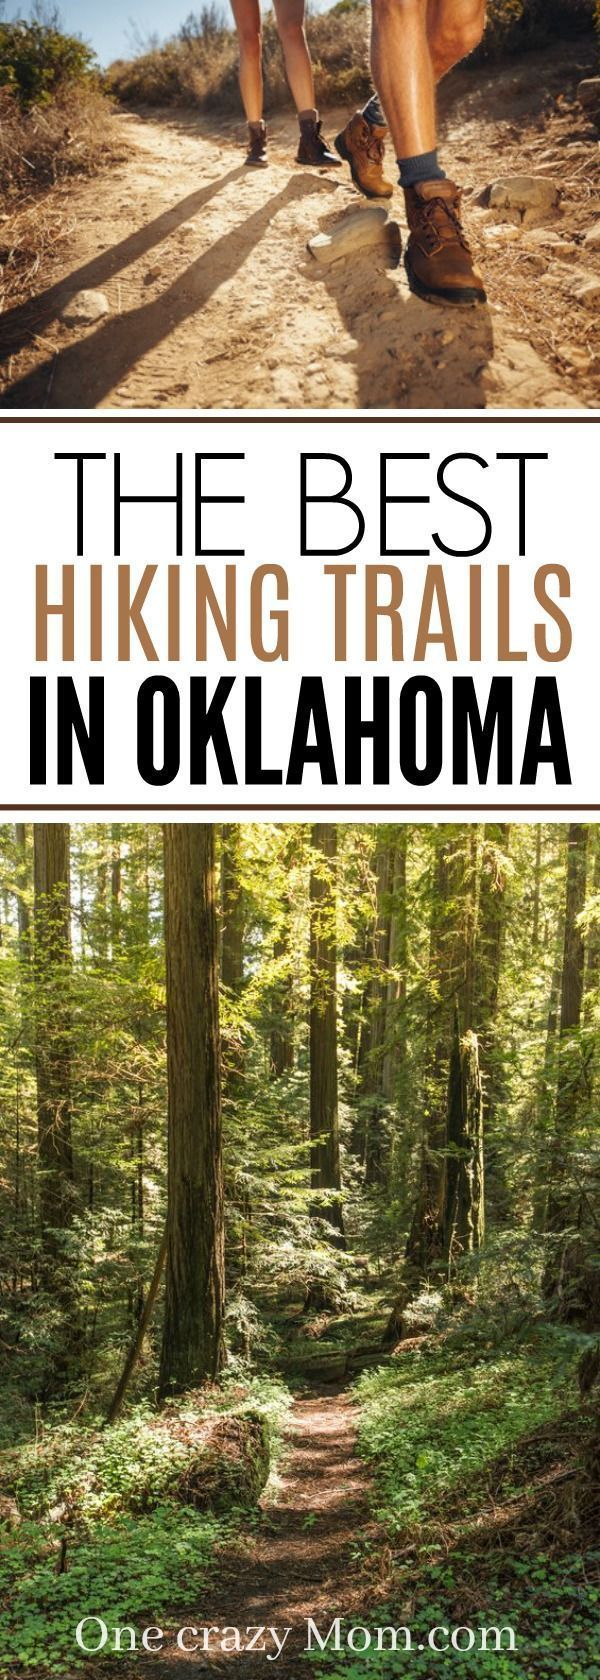 Photo of Oklahoma Hiking Trails – Find the best hiking trails in Oklahoma!